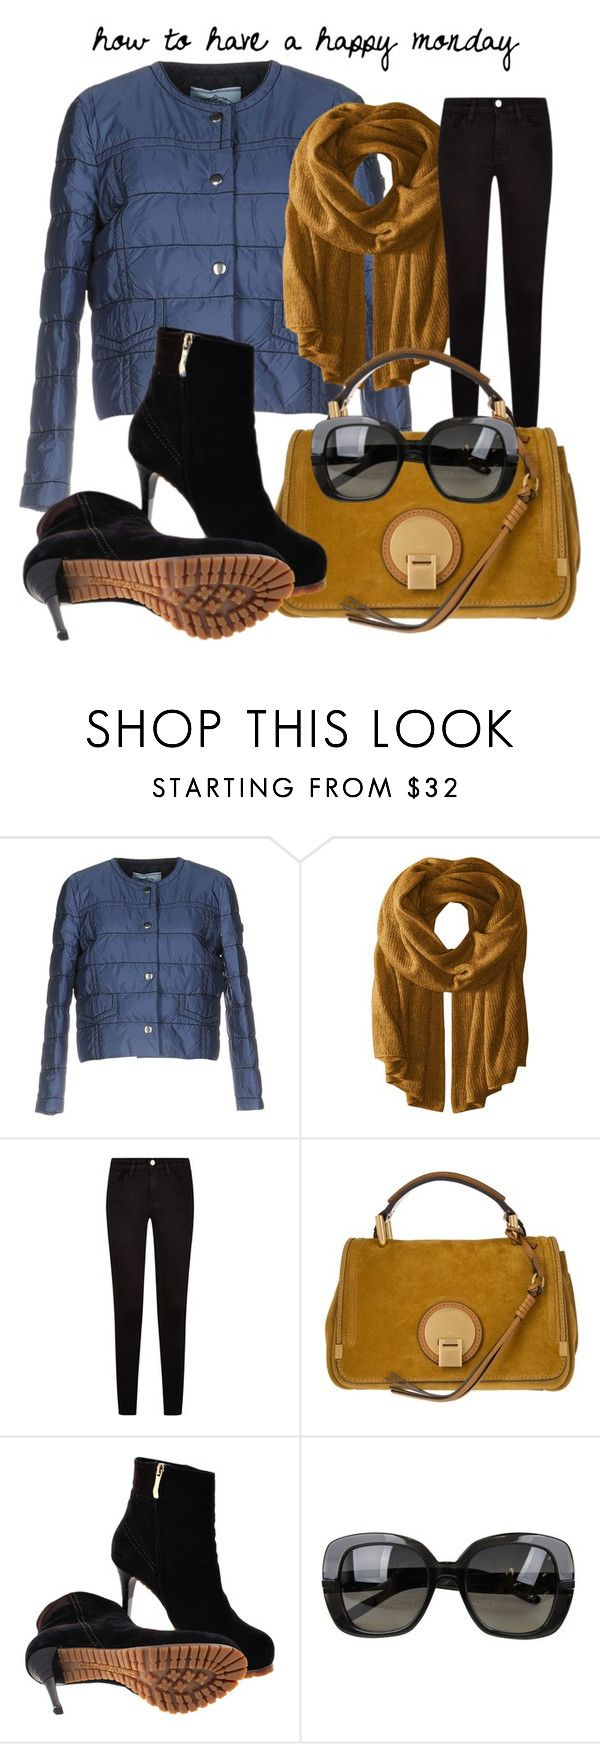 """happy monday"" by glasspaperscizzors on Polyvore featuring Prada, Steve Madden, Chloé, Gianmarco Lorenzi and Bottega Veneta"